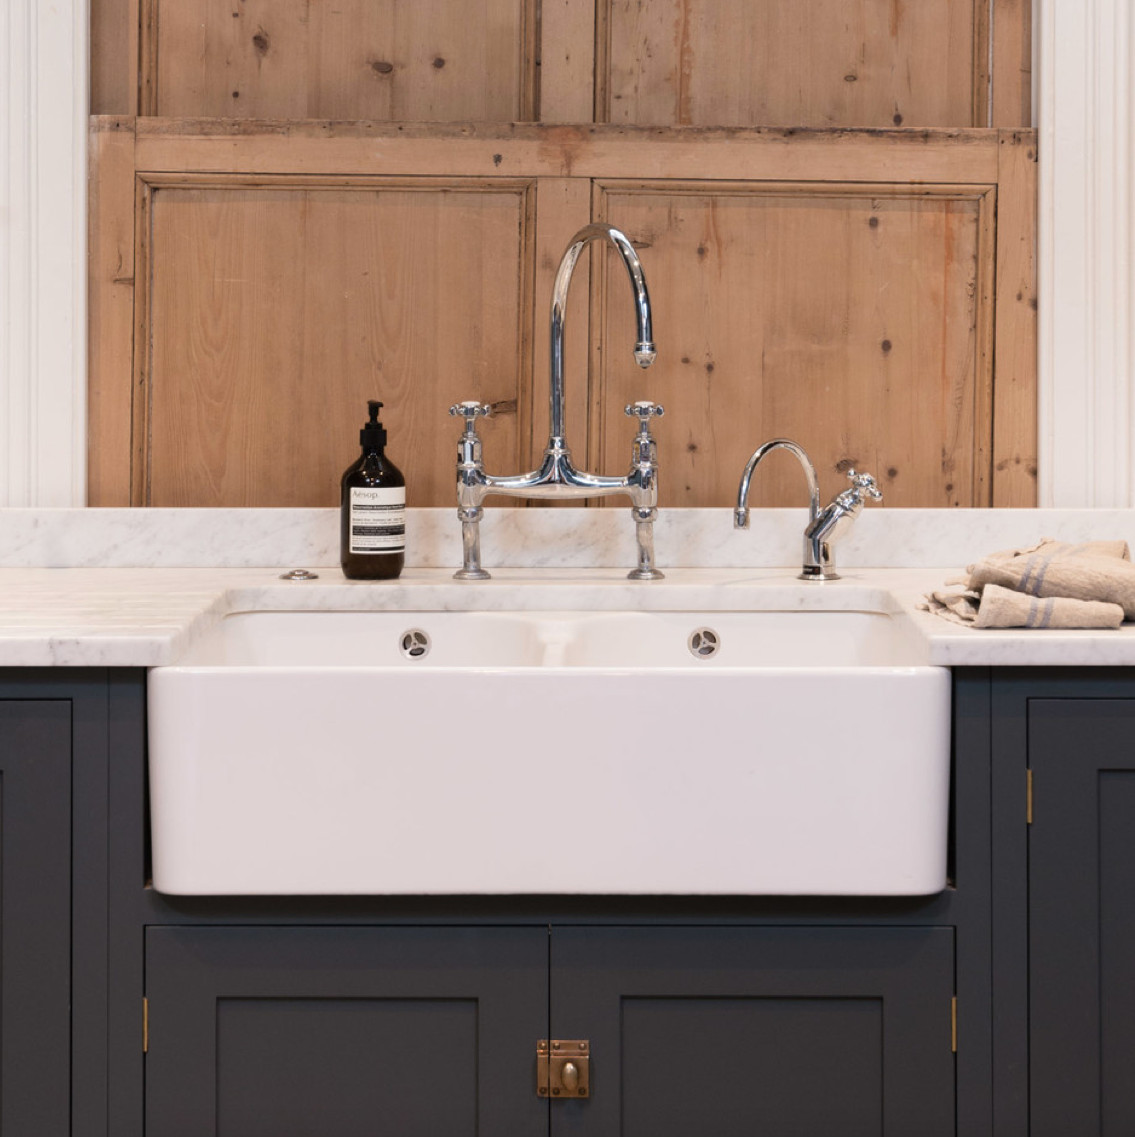 deVol kitchen - Double apron front sink with classic bridge faucet in a deVol kitchen with Shaker cabinets in Flint gray - deVol Kitchens via Atticmag